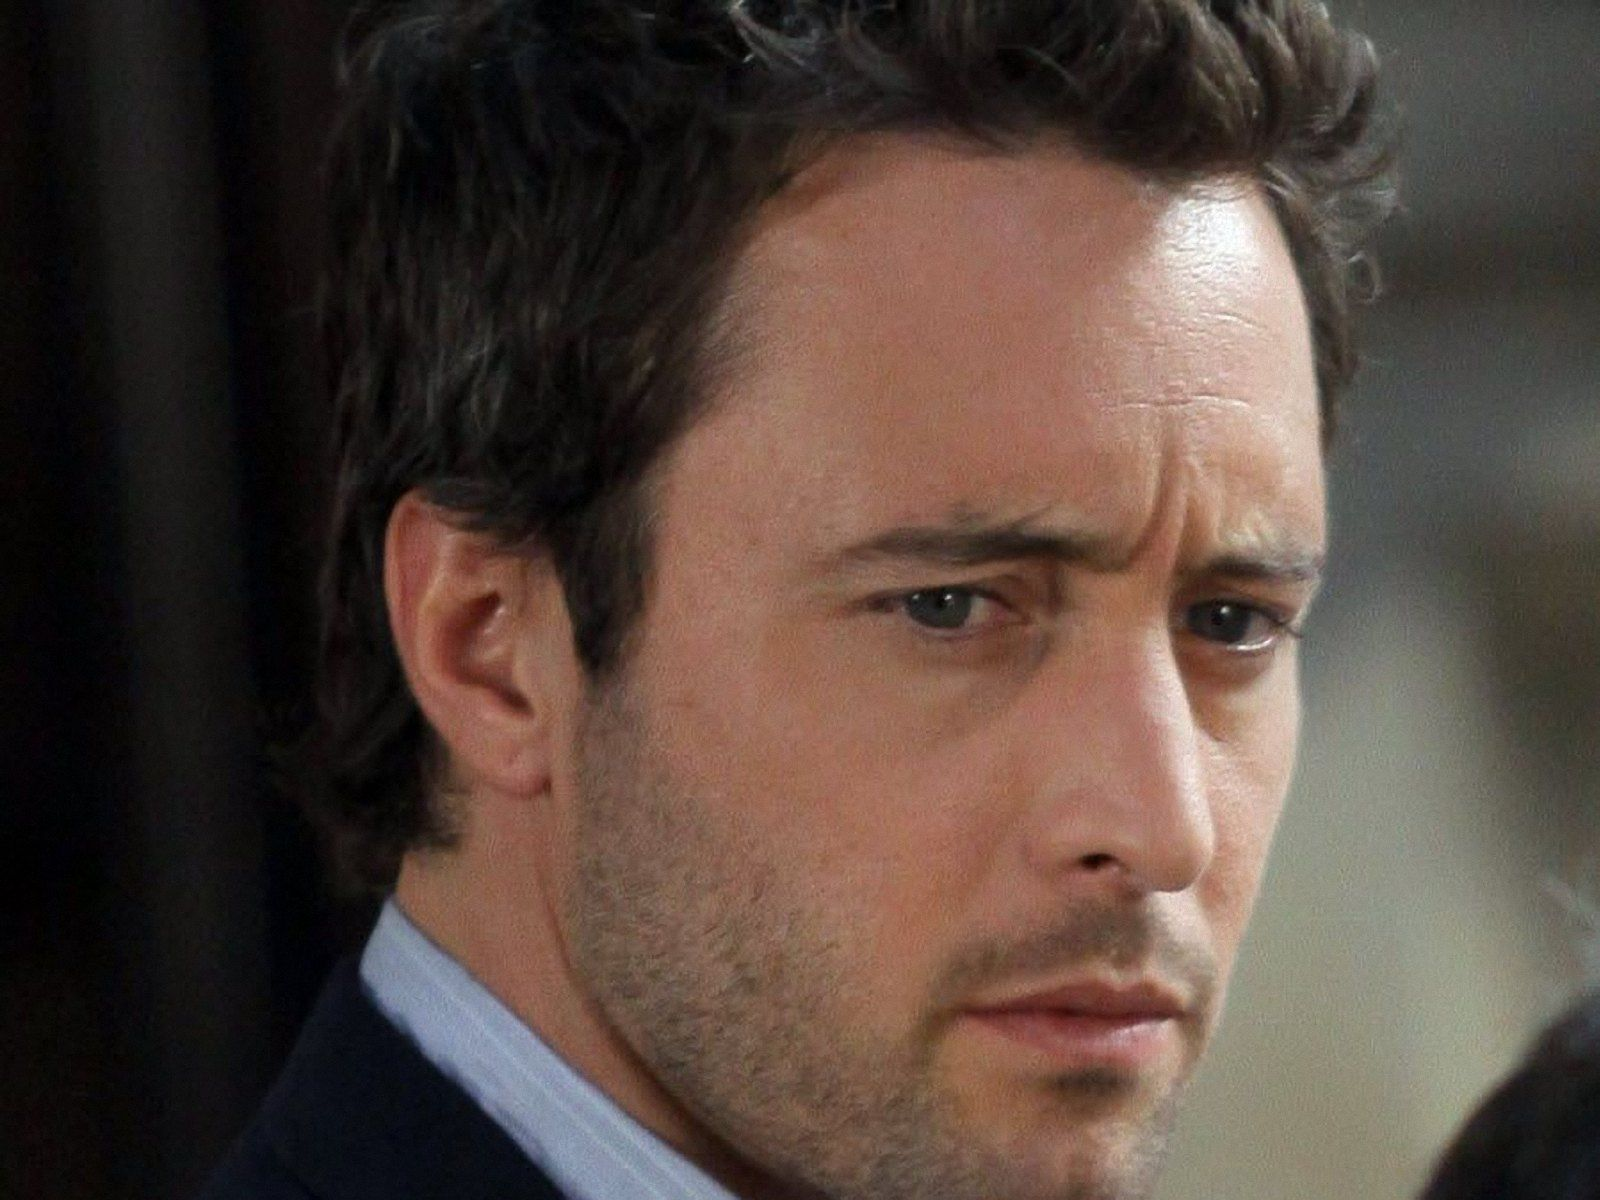 Free Posts of TV & Movies, Alex O'Loughlin is Frowning, the Guy is Nice-Looking Whatever He Does--1600X1200 free wallpaper download